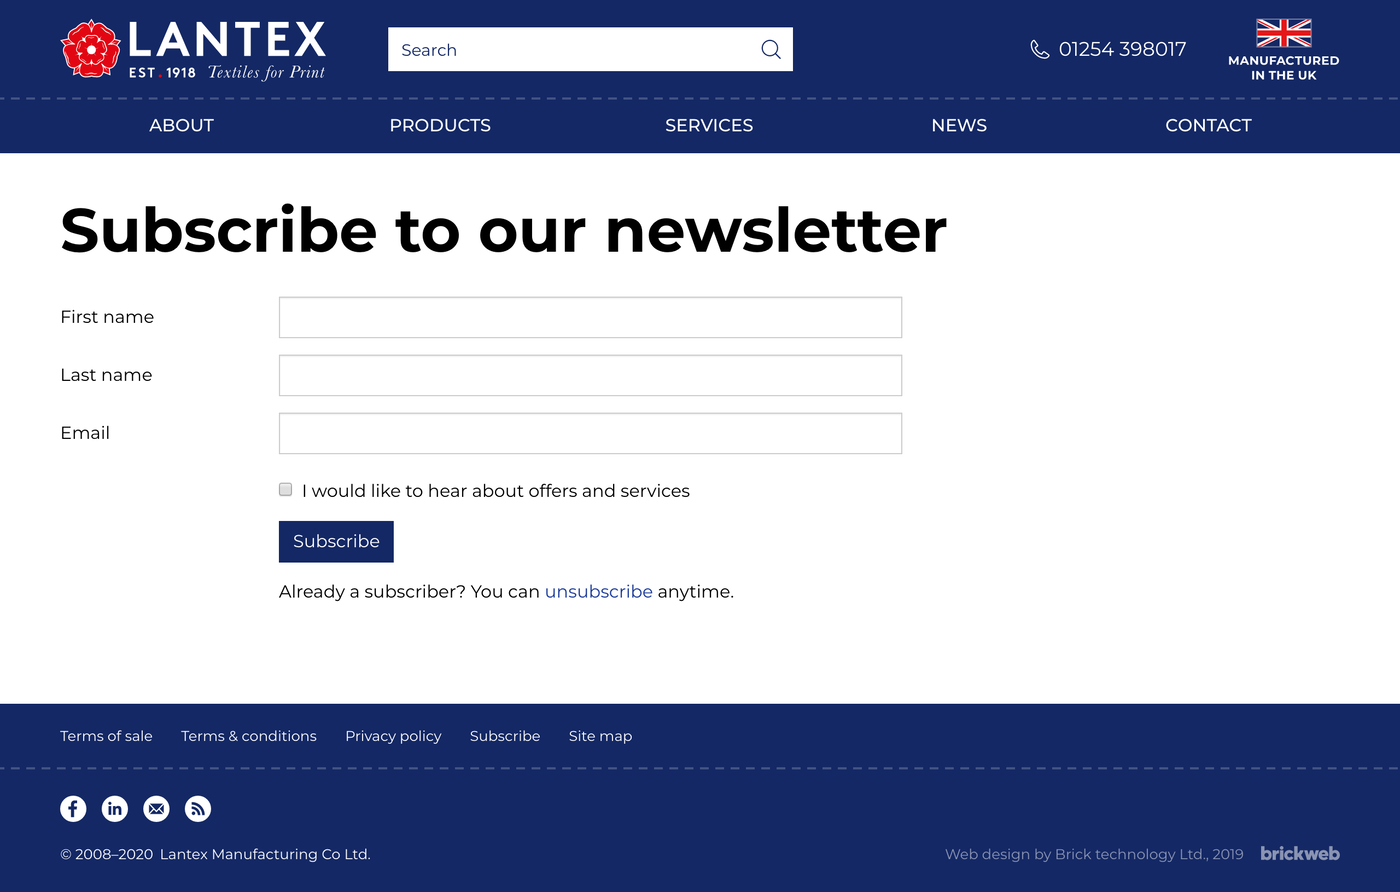 Lantex Subscribe to our newsletter